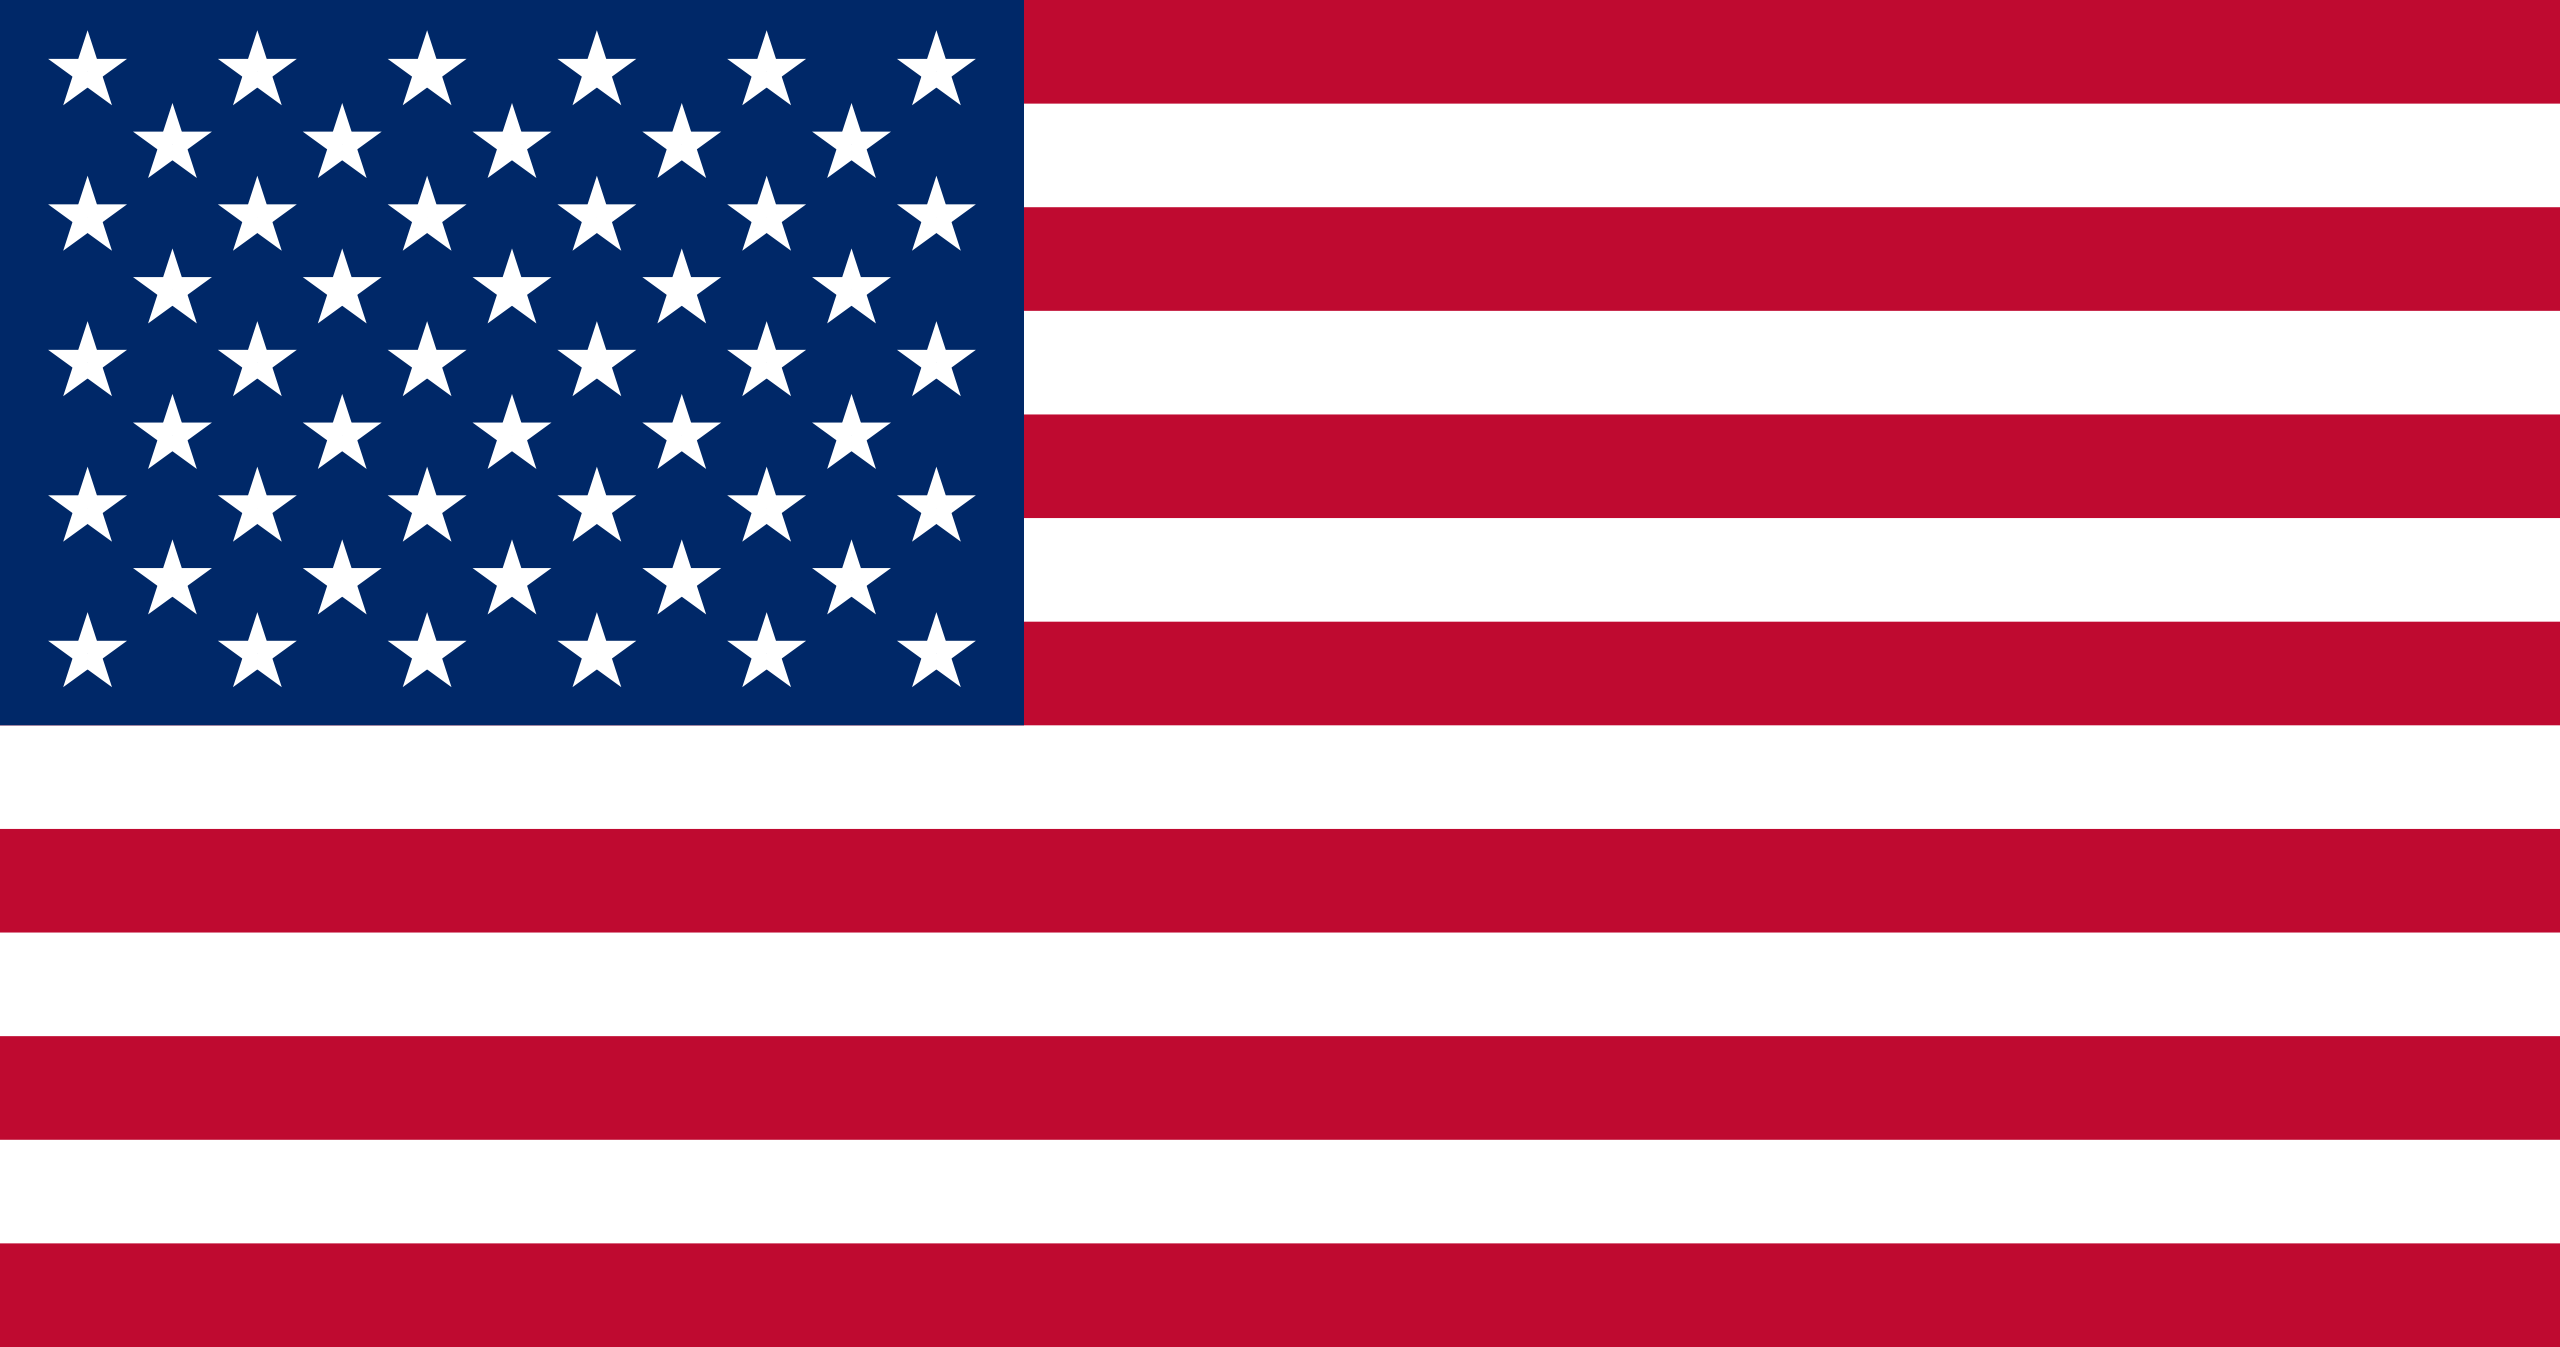 Flag of United States